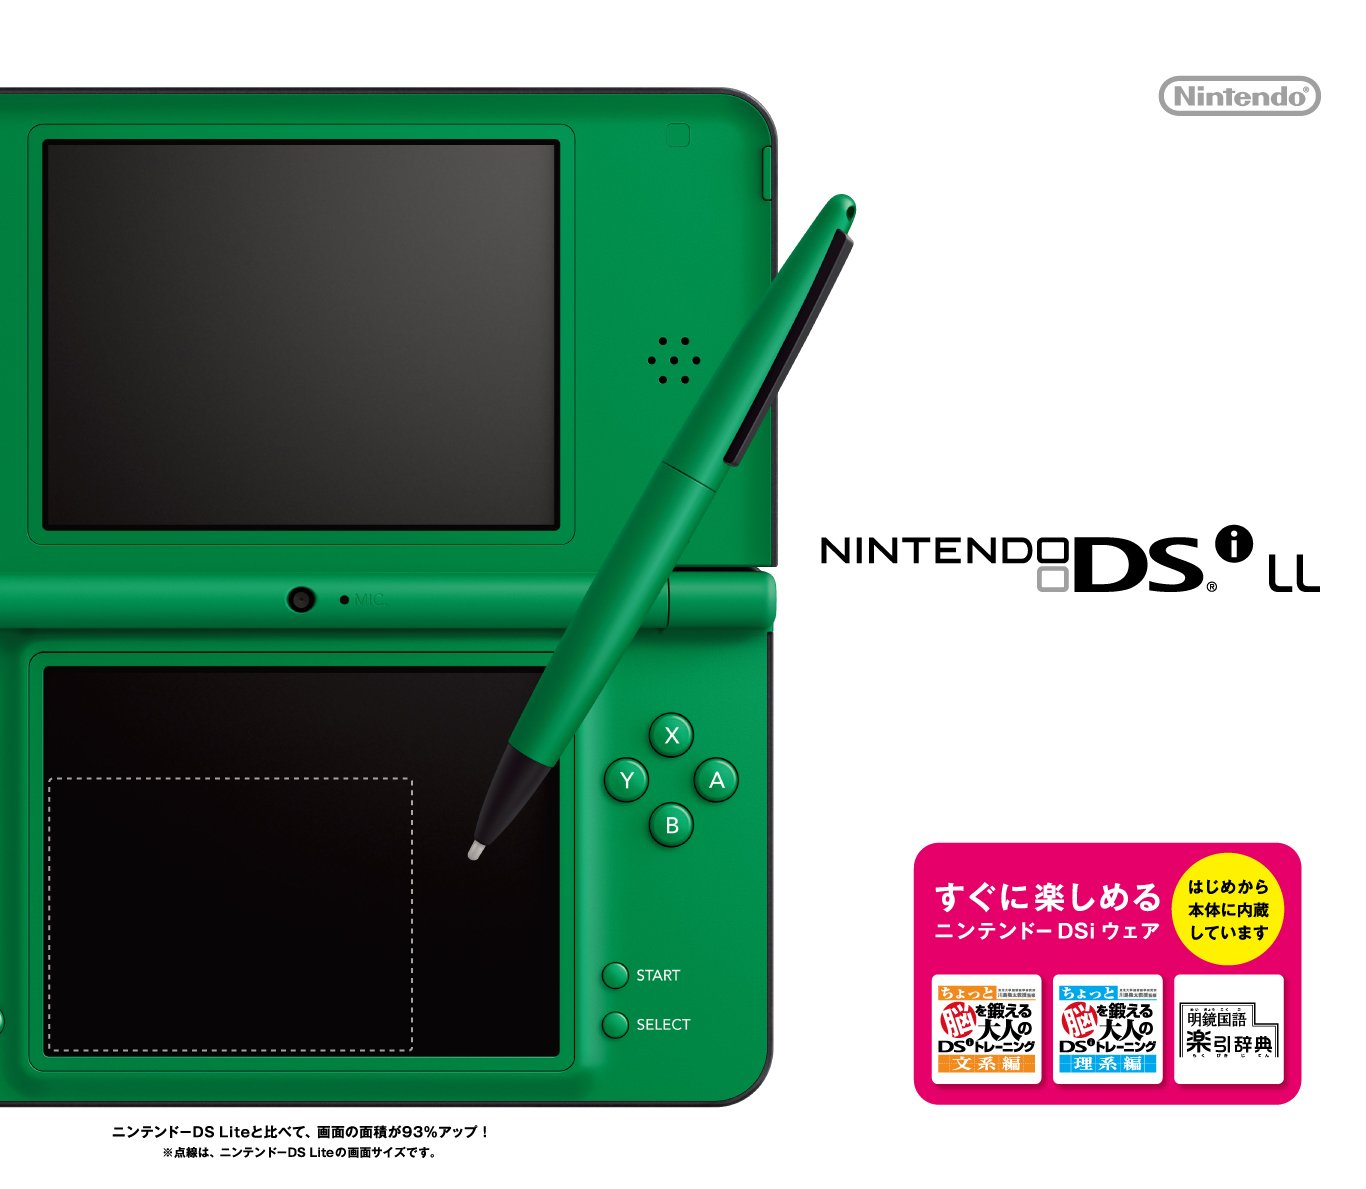 Has sexy blowjobs on dsi this